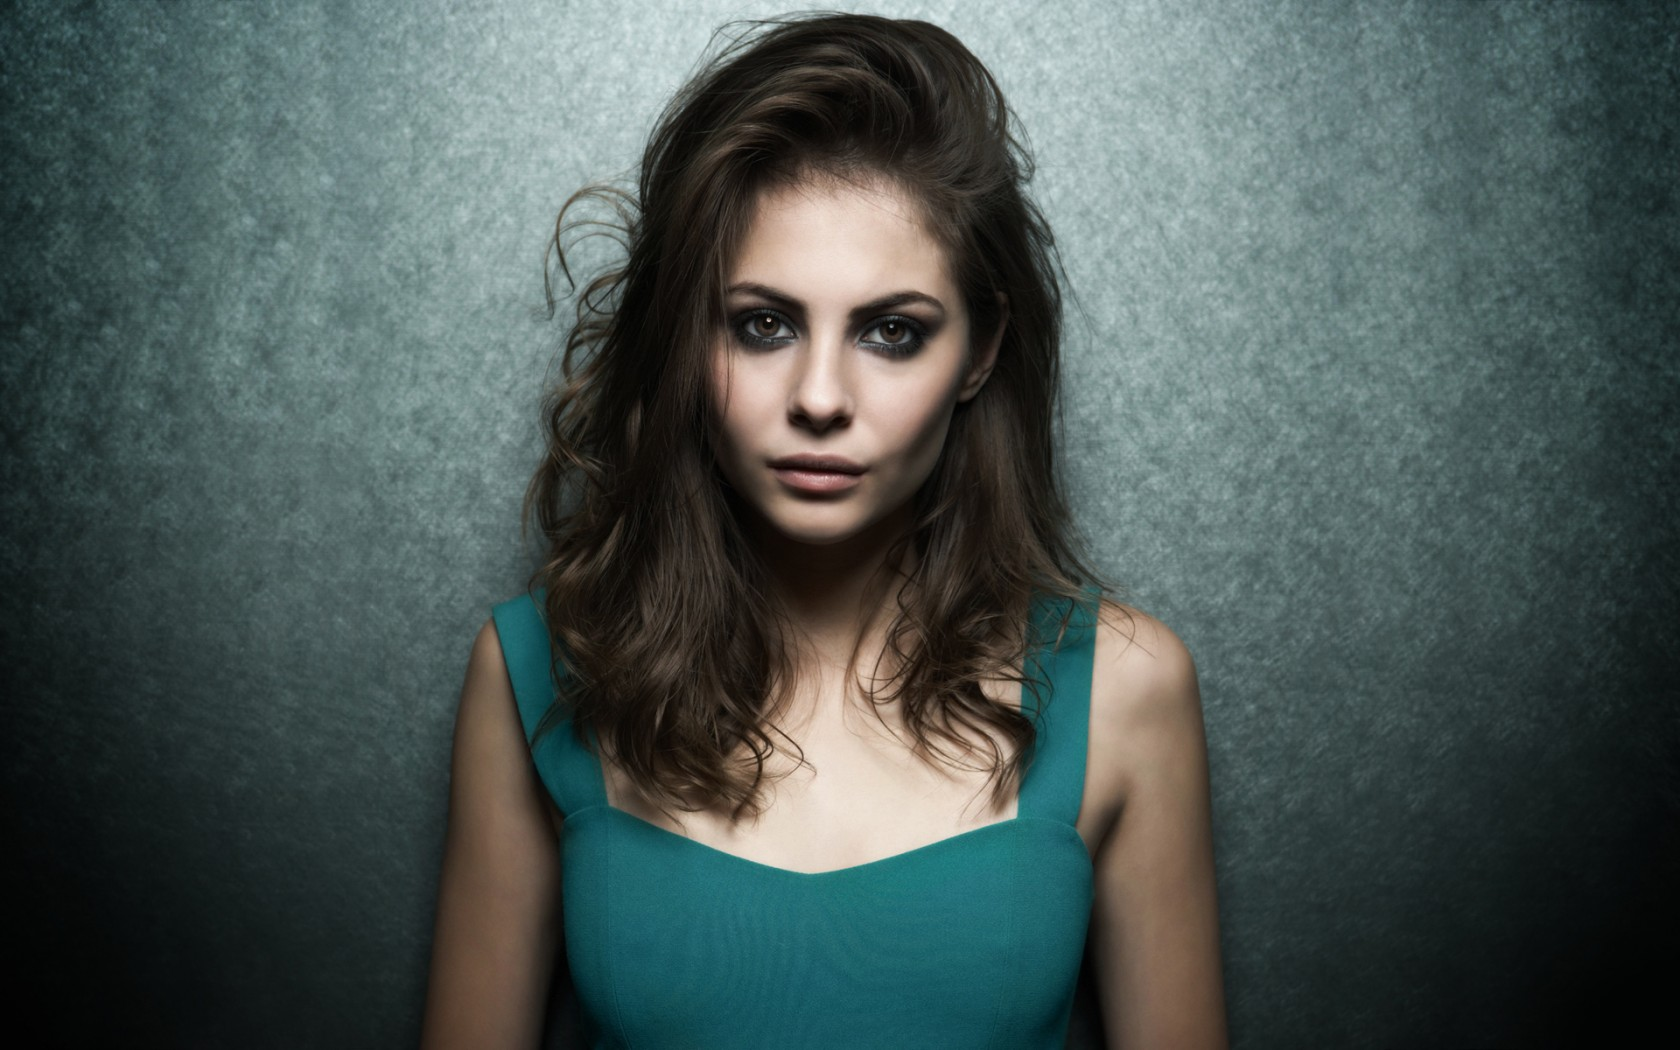 Ios 7 3d Wallpaper Iphone 4 Willa Holland Wallpapers Hd Wallpapers Id 11155